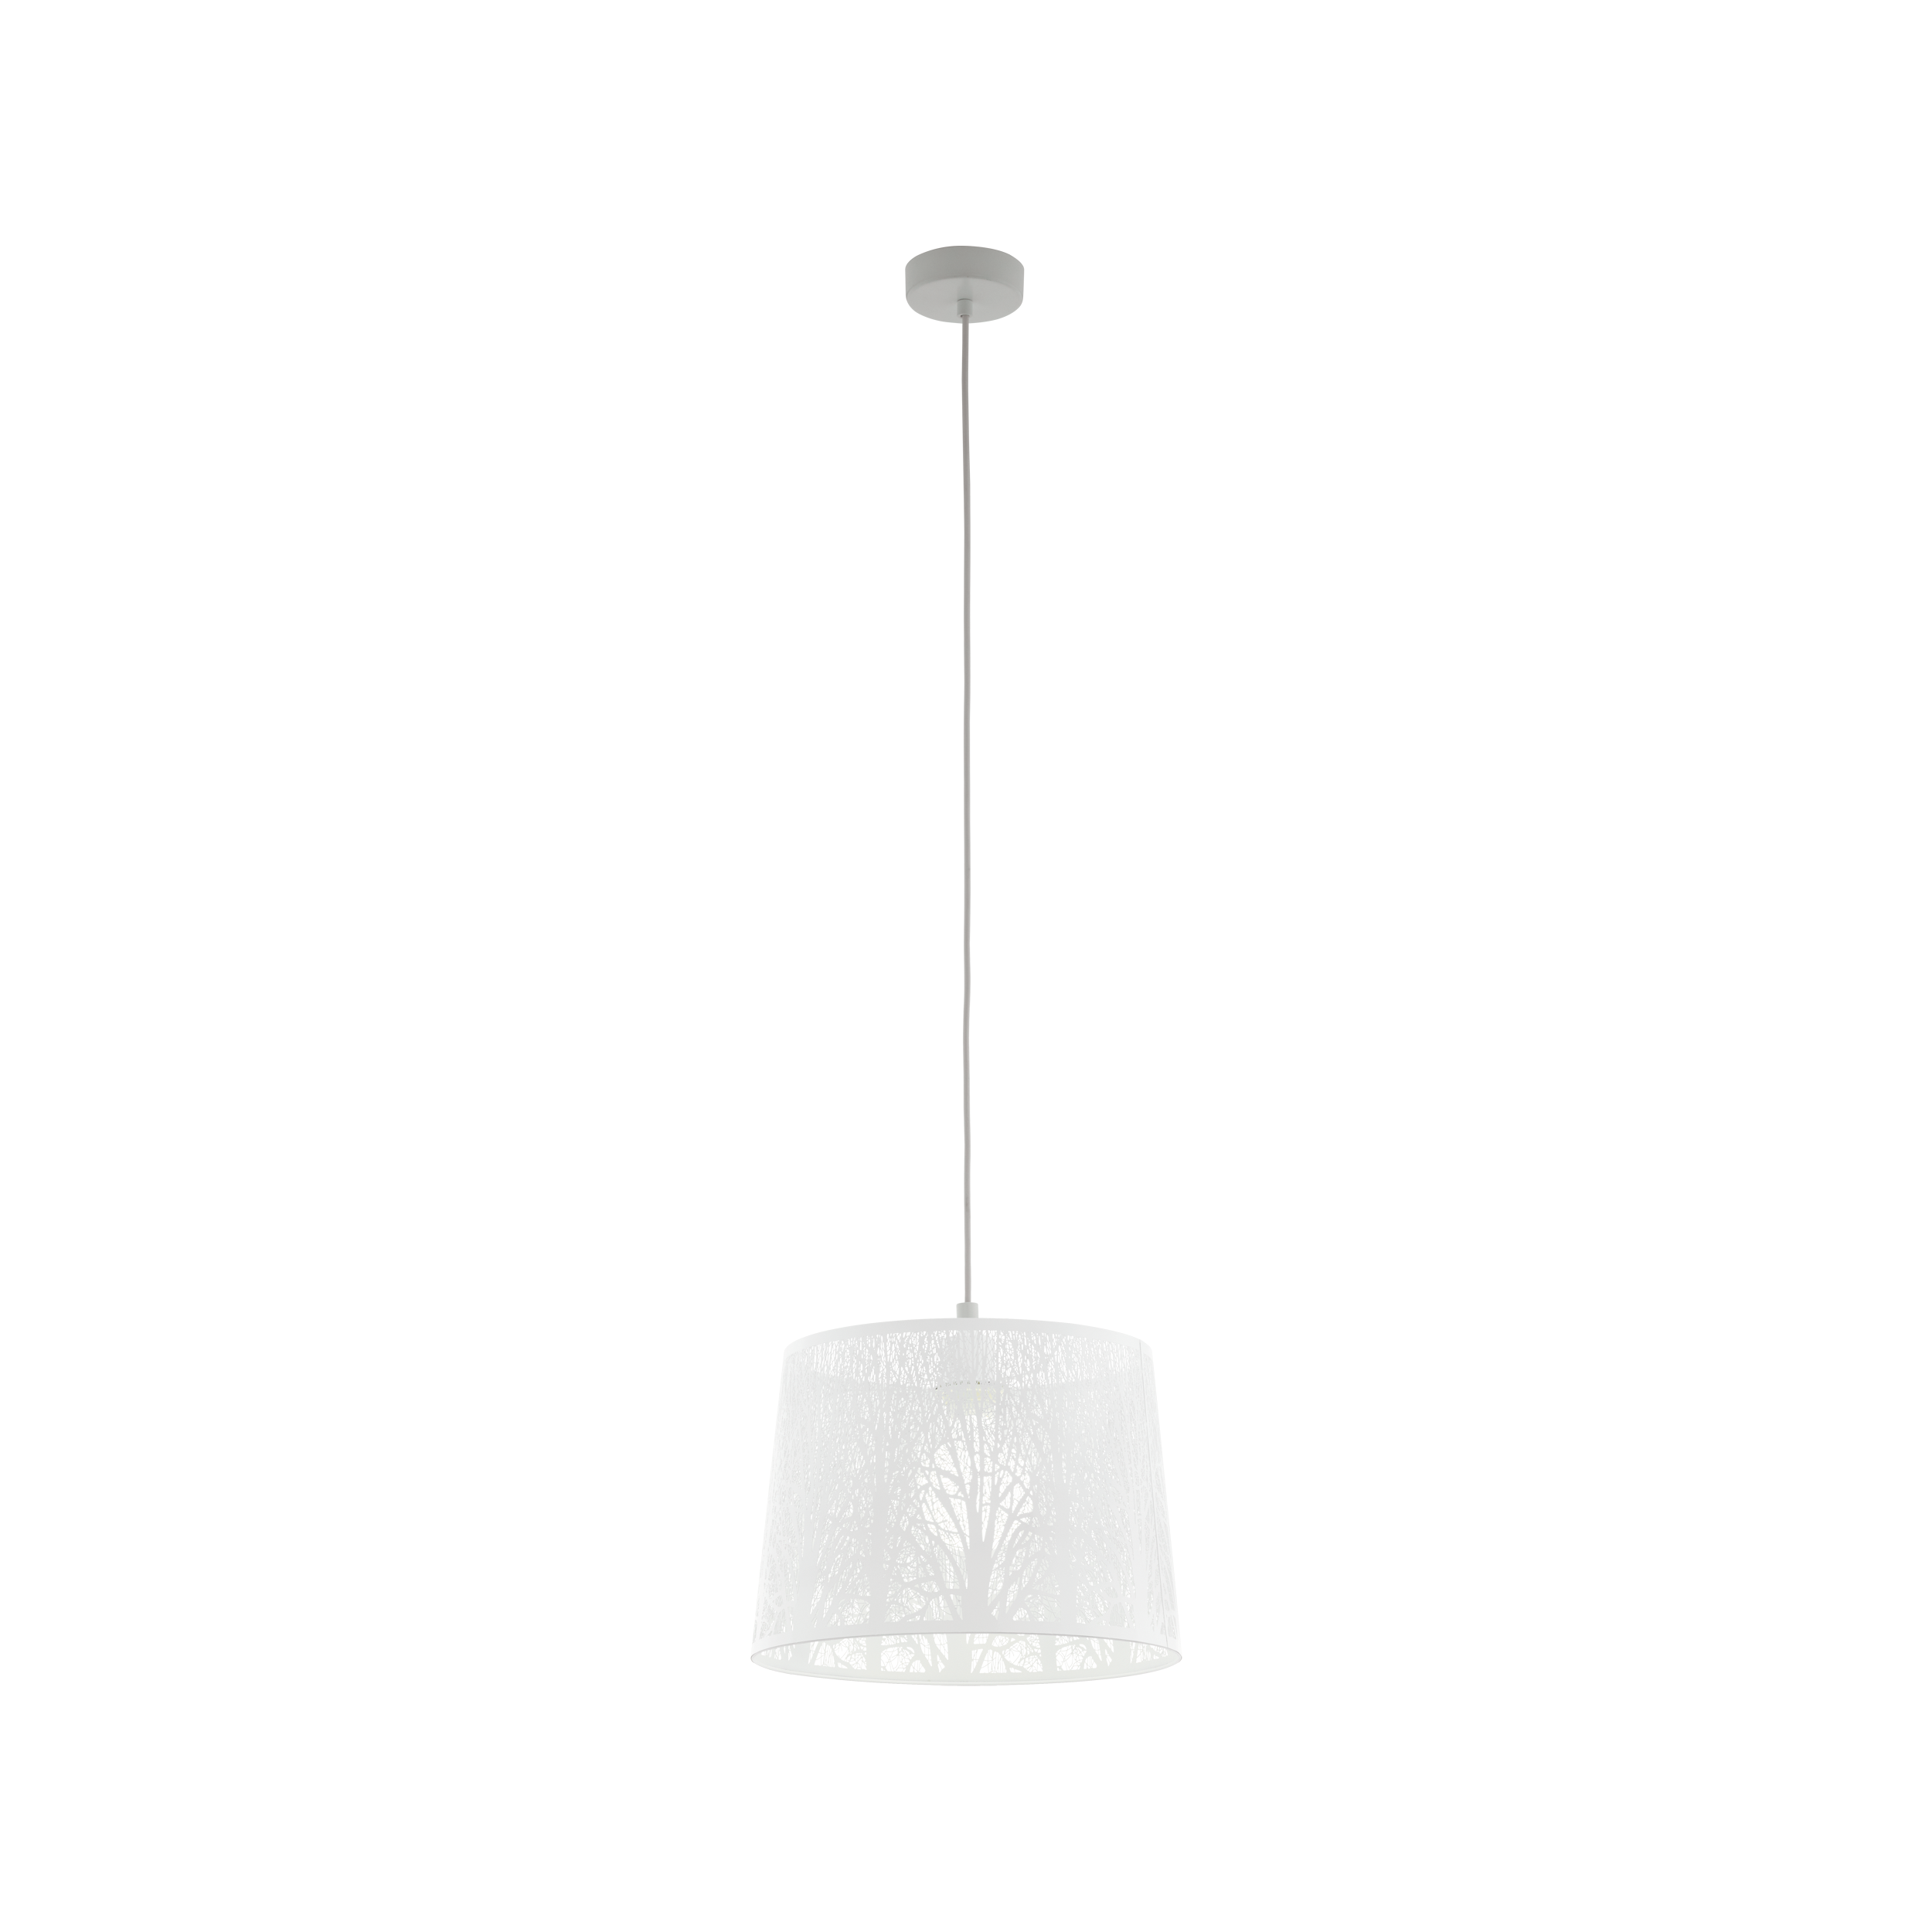 EGLO 'HAMBLETON' PENDANT LIGHT 1xE27